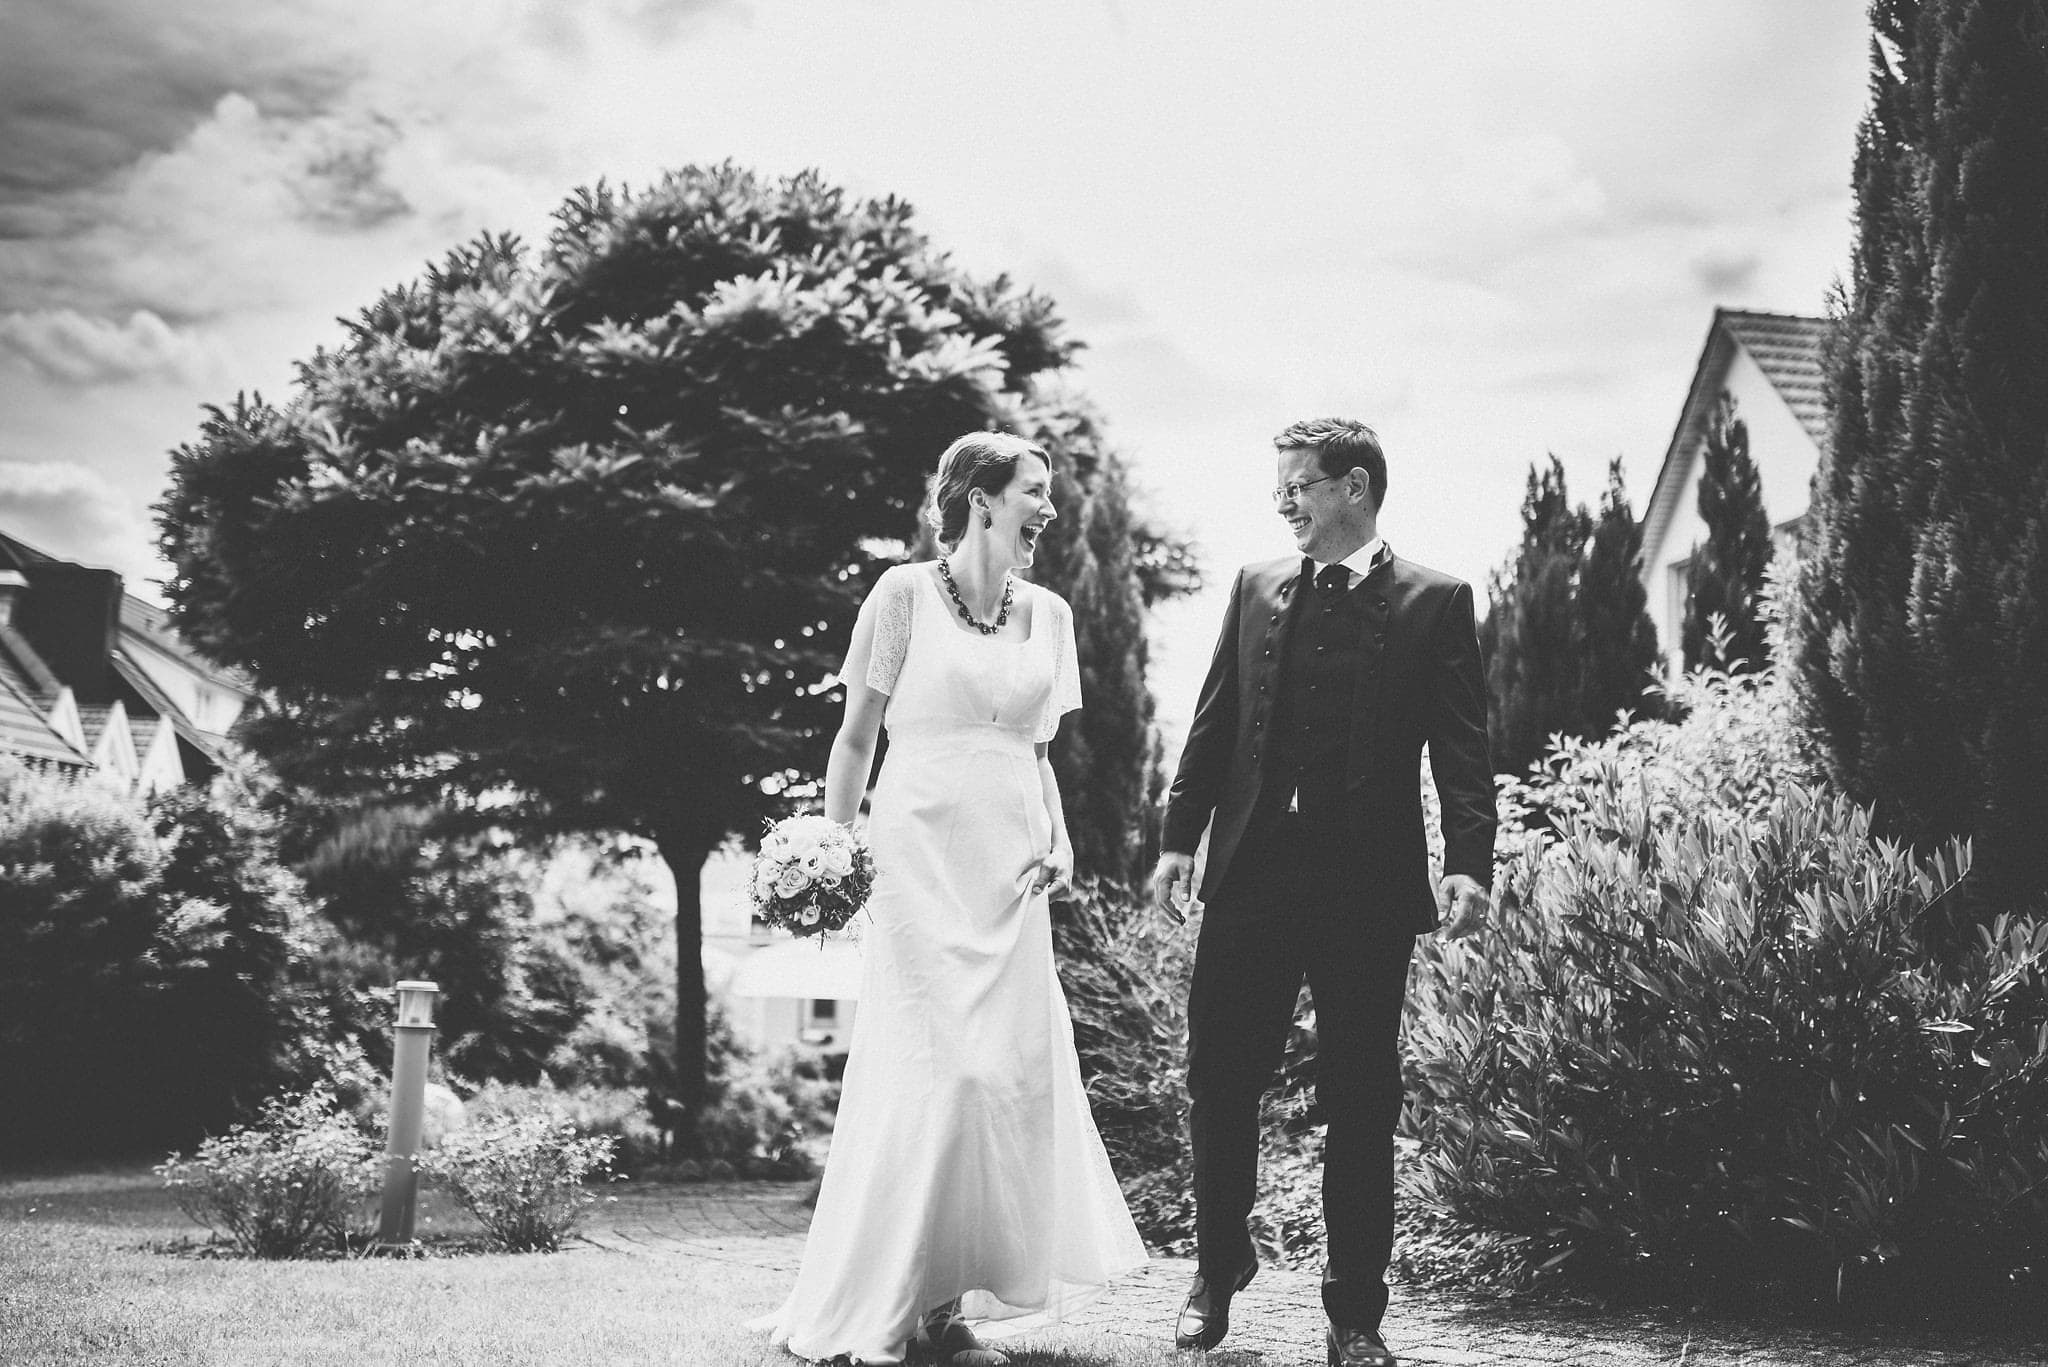 Bride and groom walking and laughing at their Heartfelt Destination Wedding in Germany | Maria Assia Photography